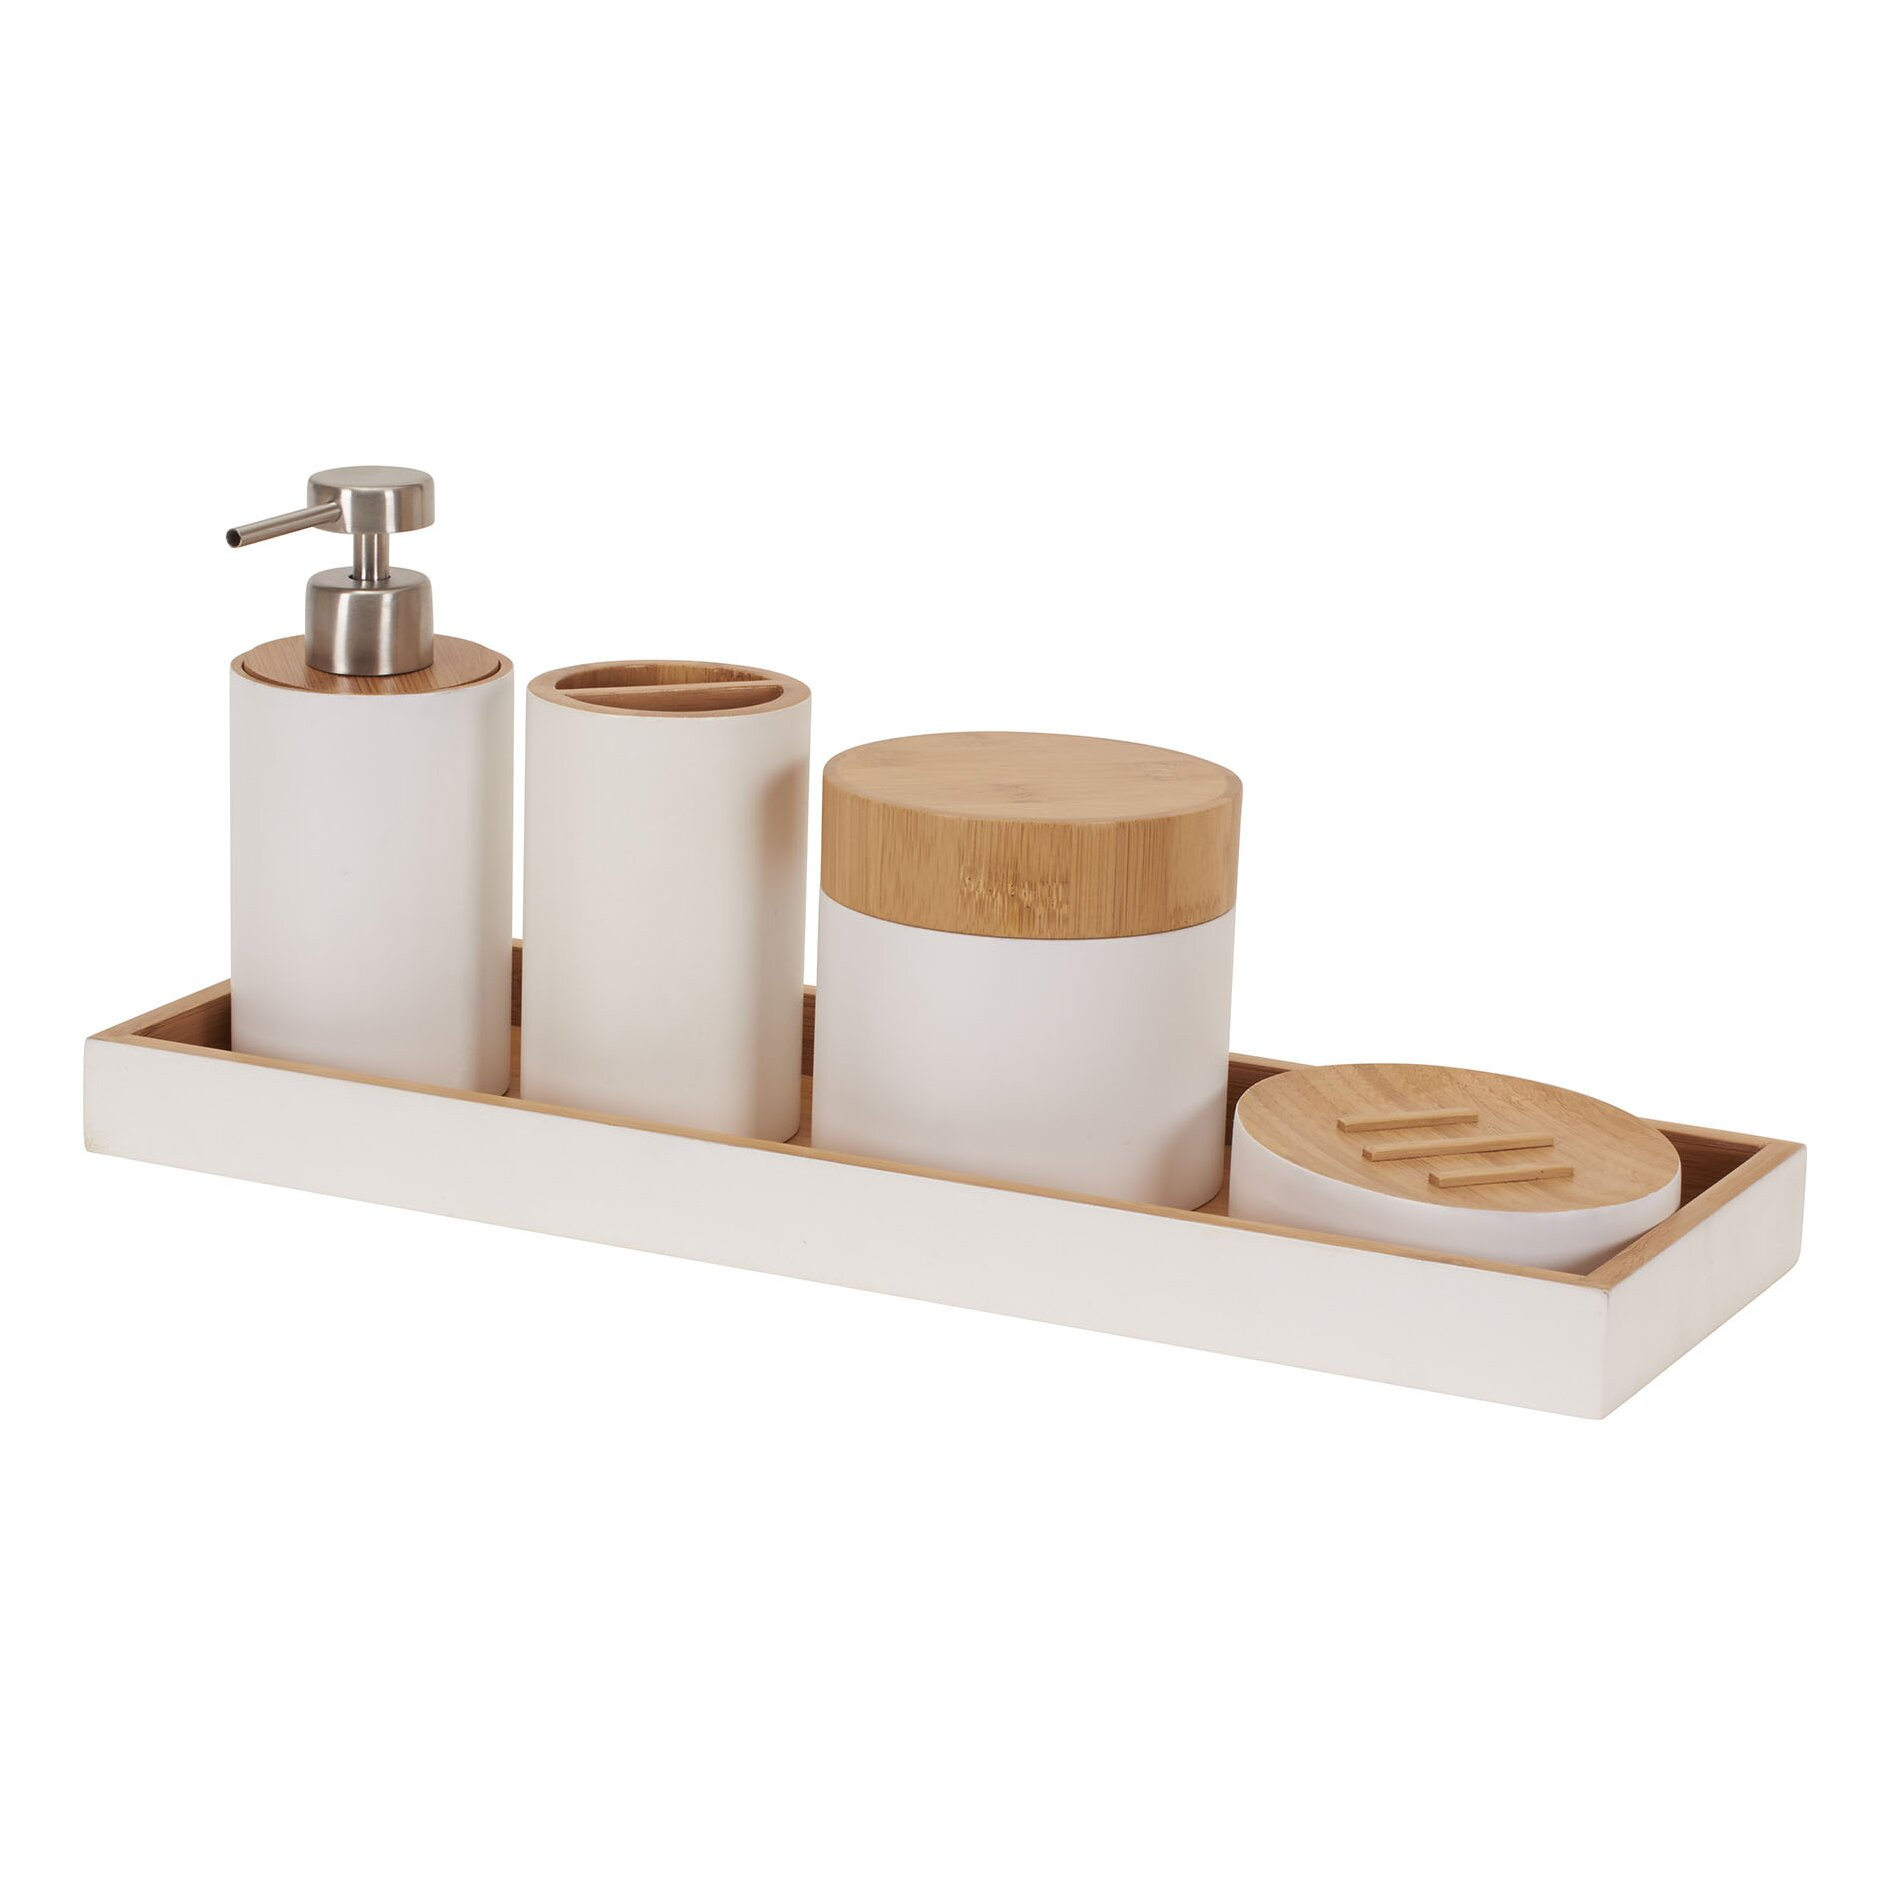 the twillery co. shaw piece bathroom accessory set  reviews, Home decor